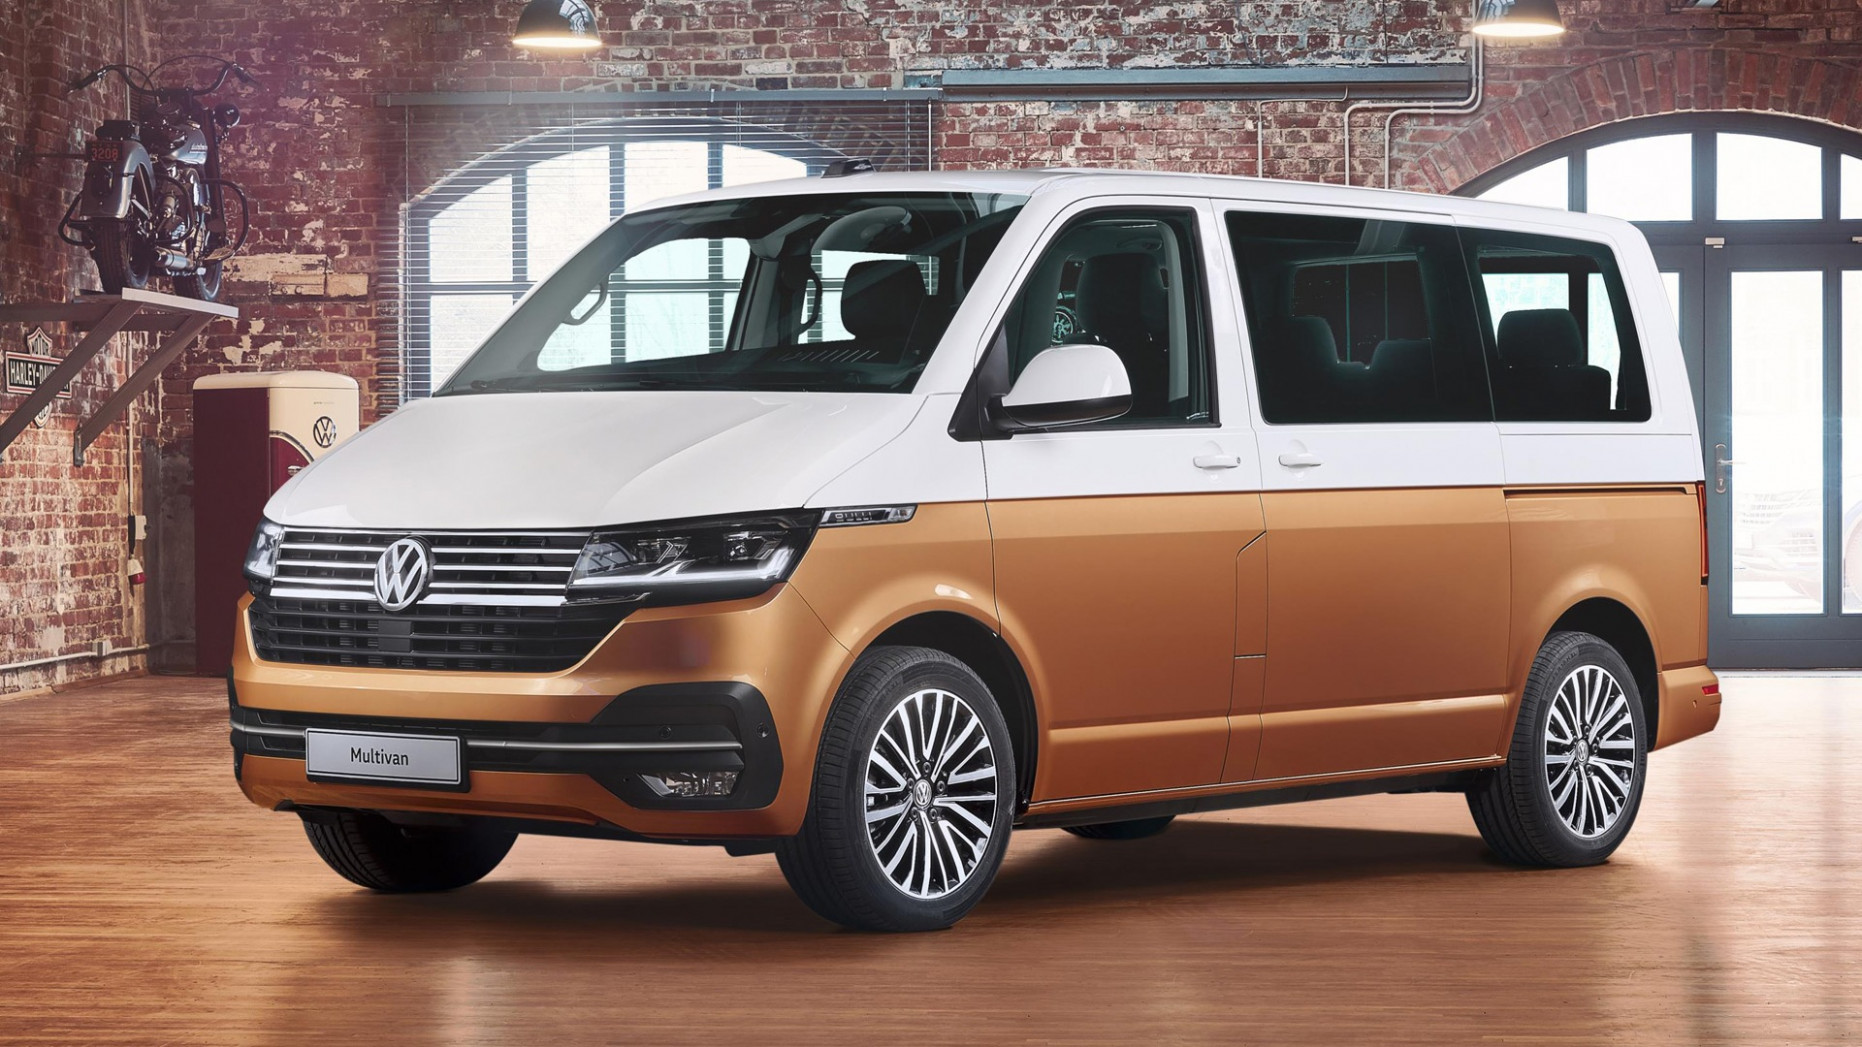 1111 Volkswagen Transporter (T1111.11) is the Bus we won't see